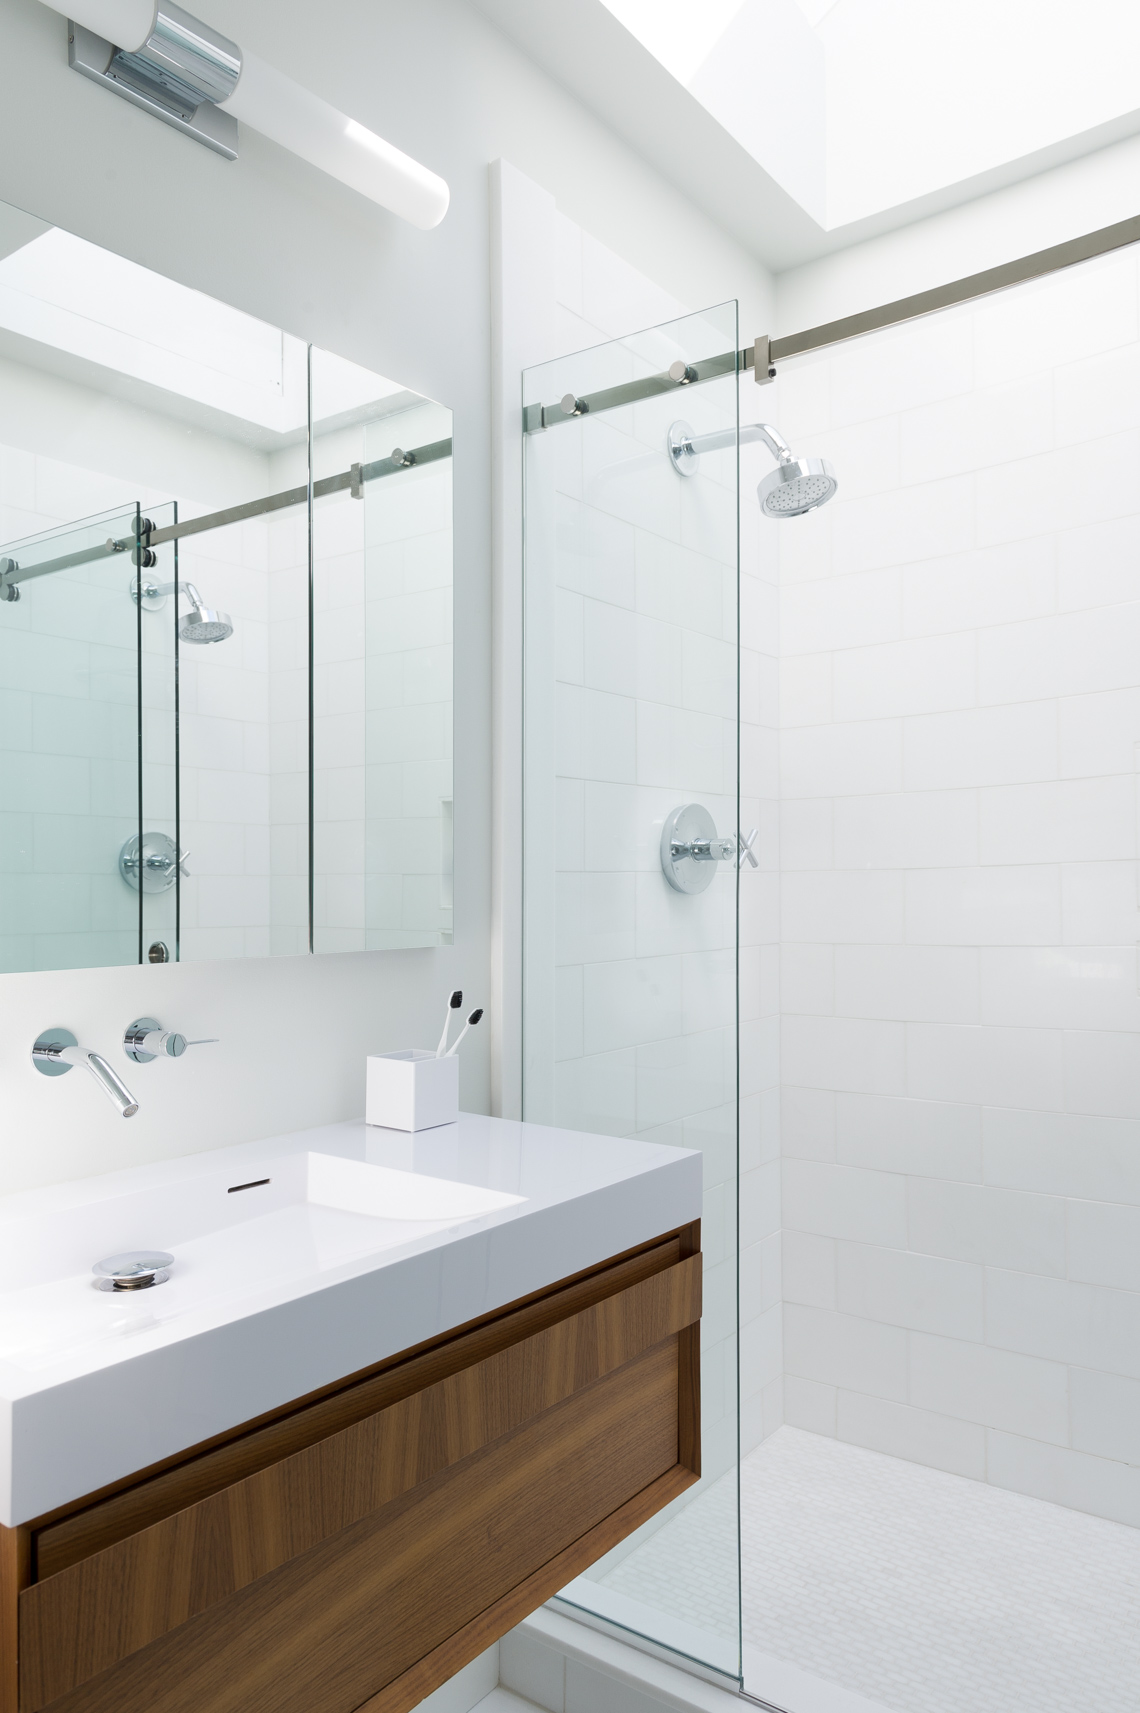 NYC Interior Photographer - Montuak House Bathroom Shower 2